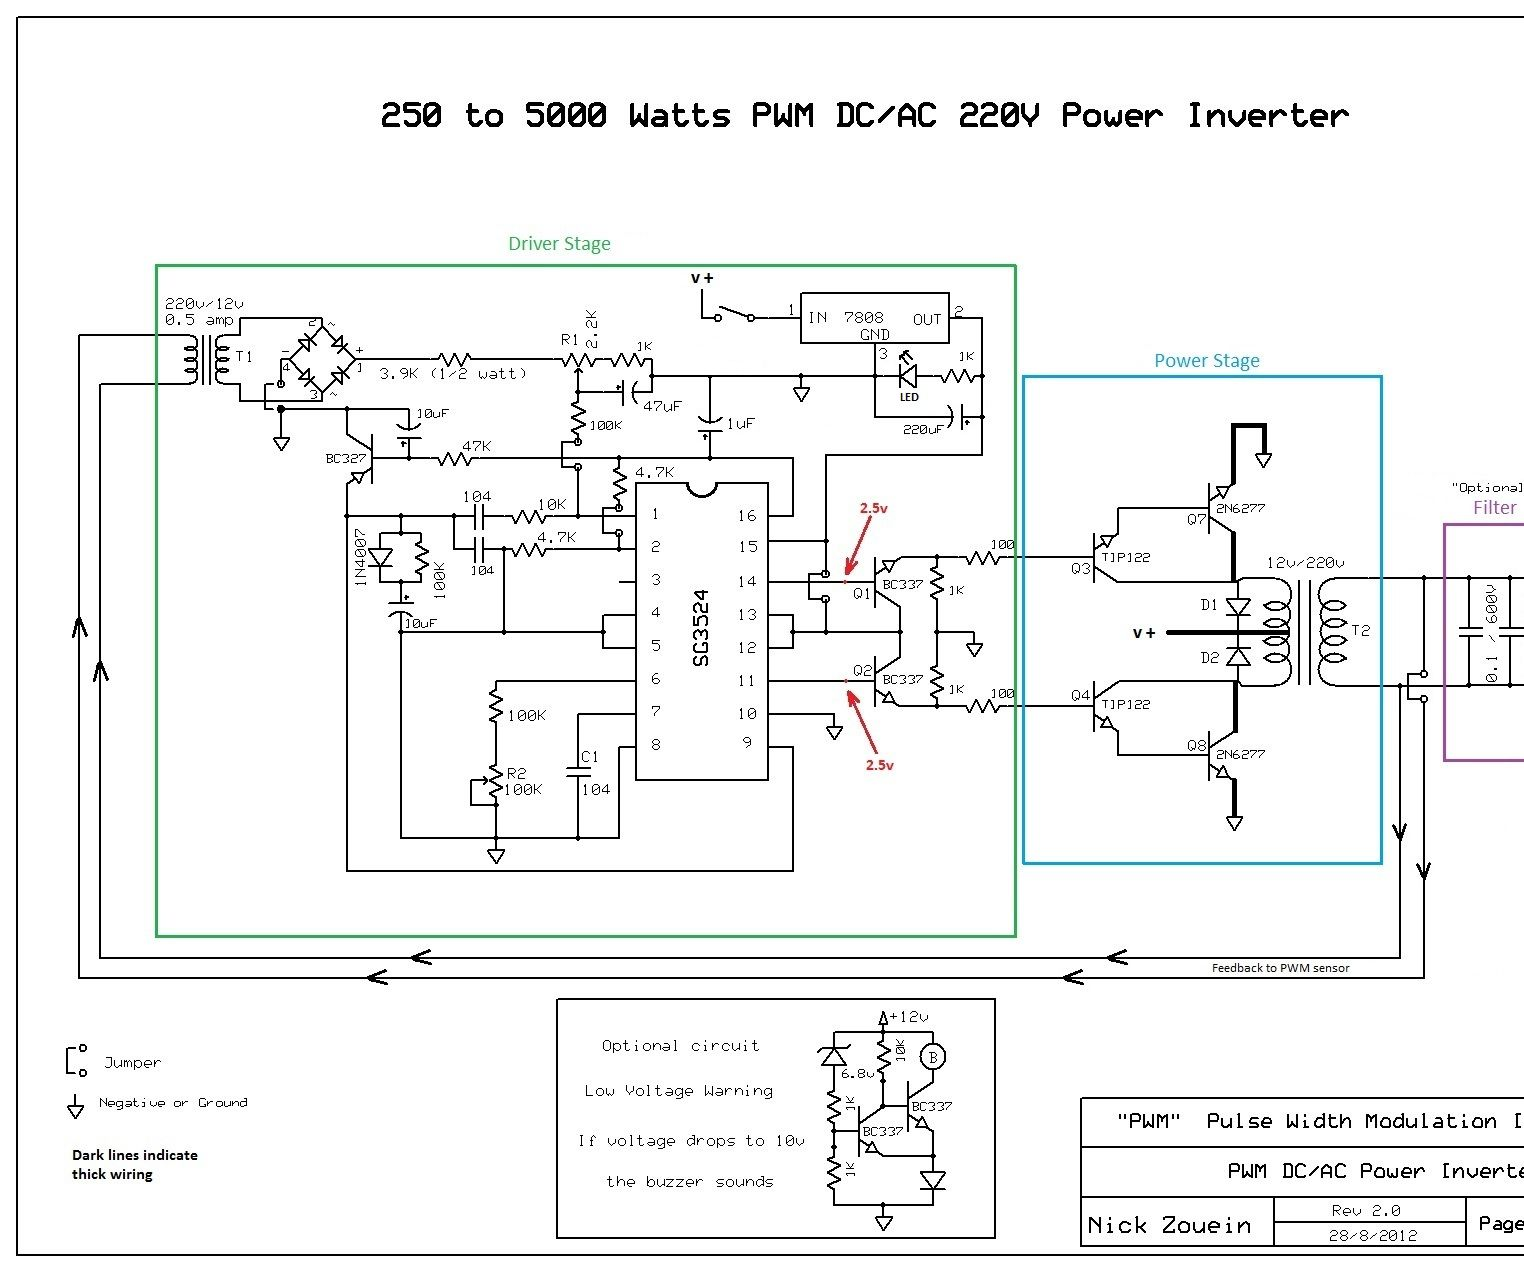 hight resolution of 48v to 12v dc to dc converter circuit on pc schematic bridge diagram 250 to 5000